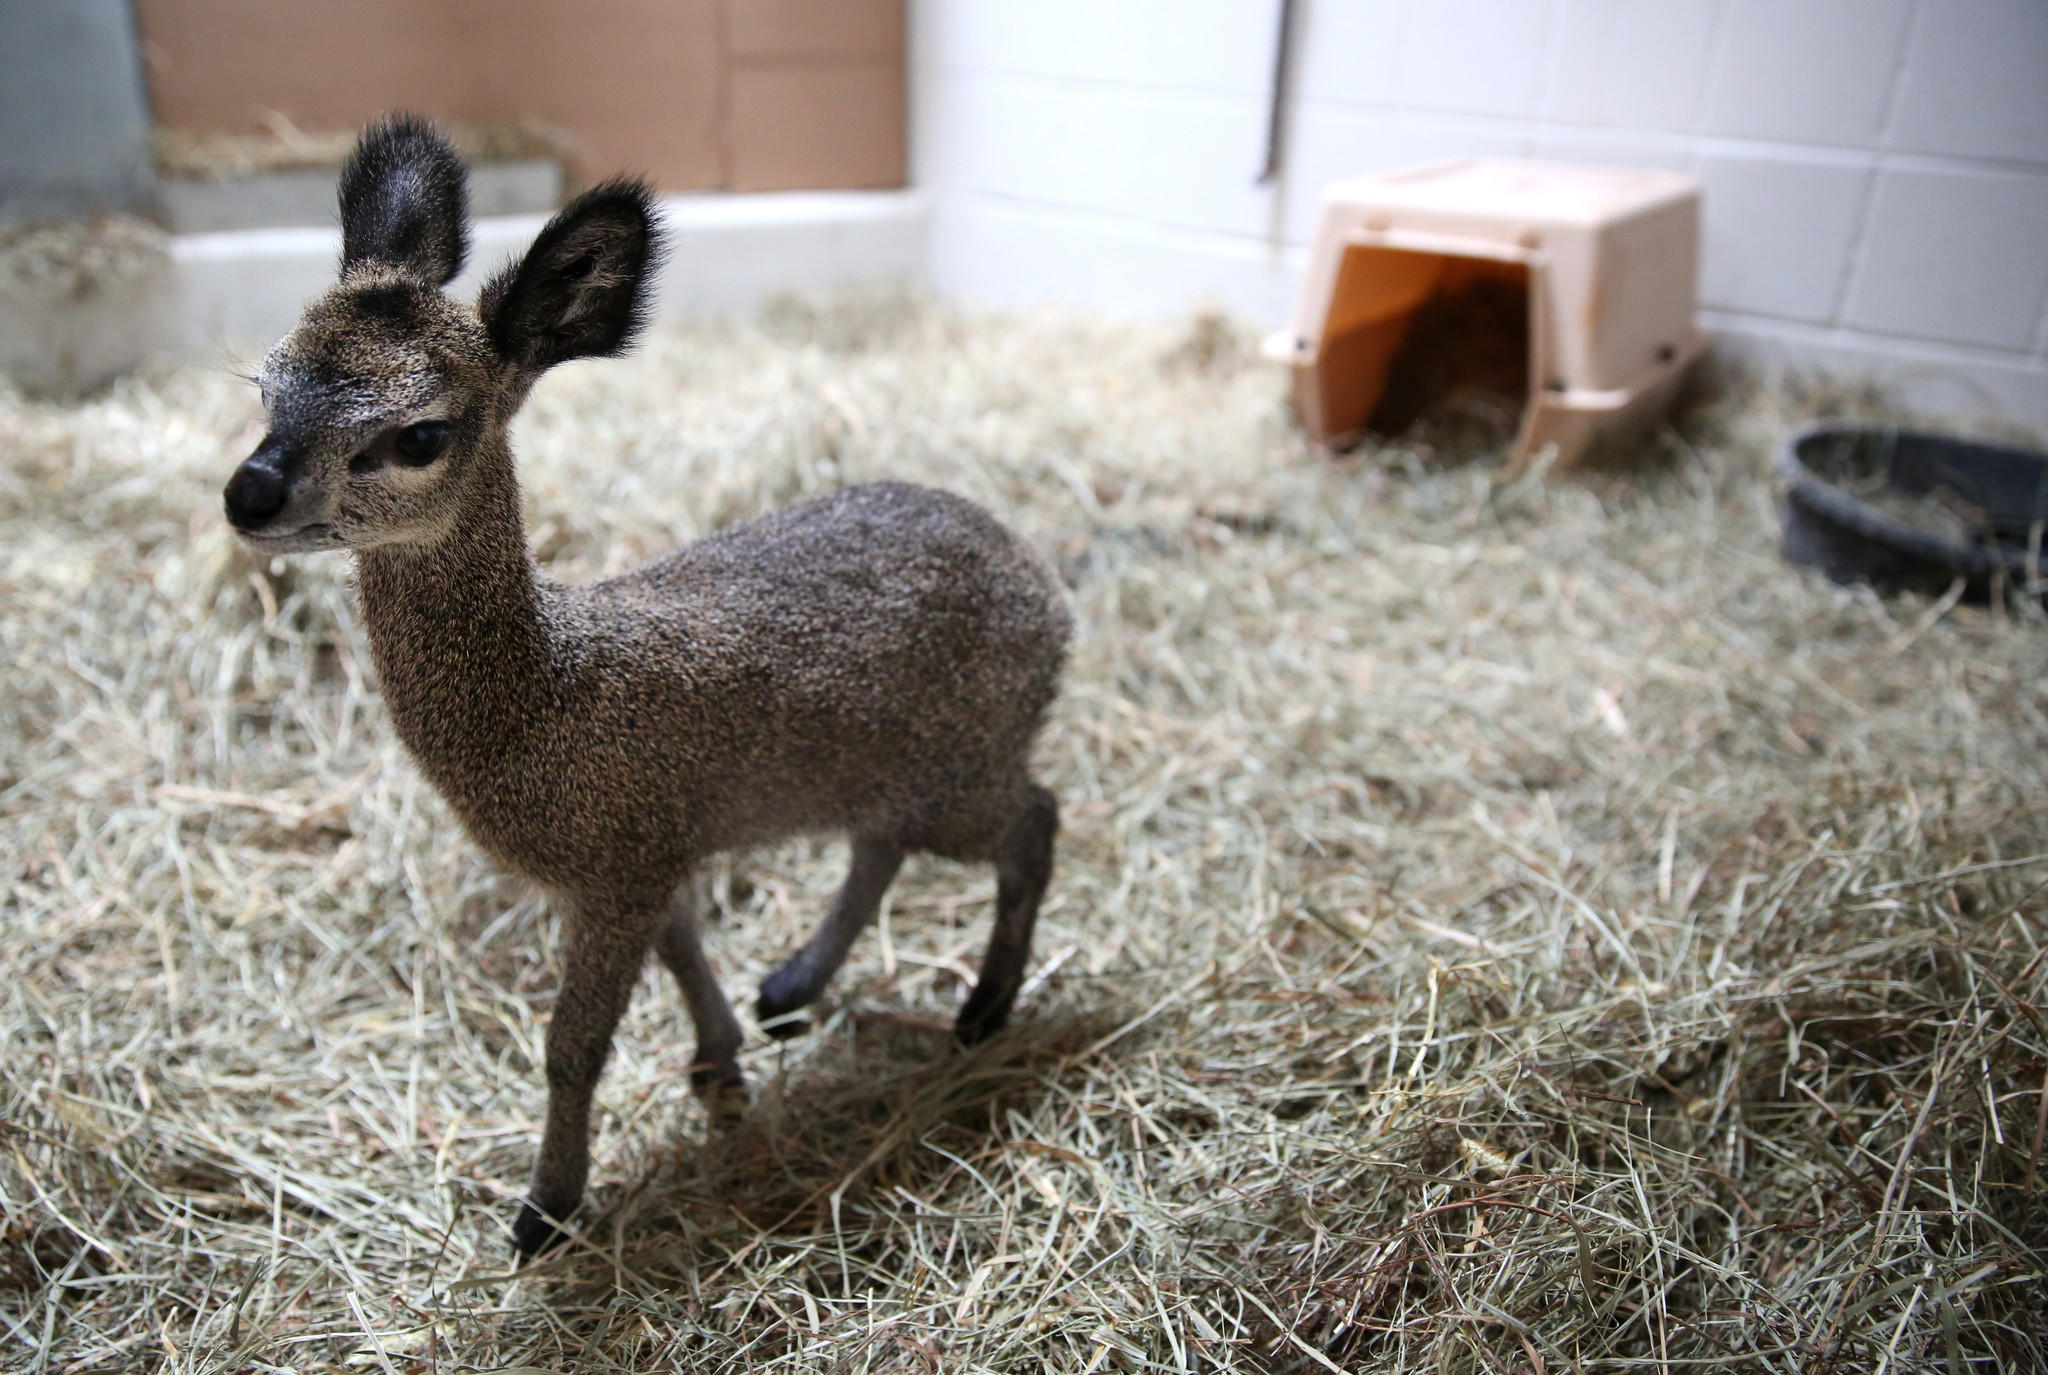 Asha, a klipspringer baby born in March, explores her enclosure at the Lincoln Park Zoo in May. She died Wednesday.